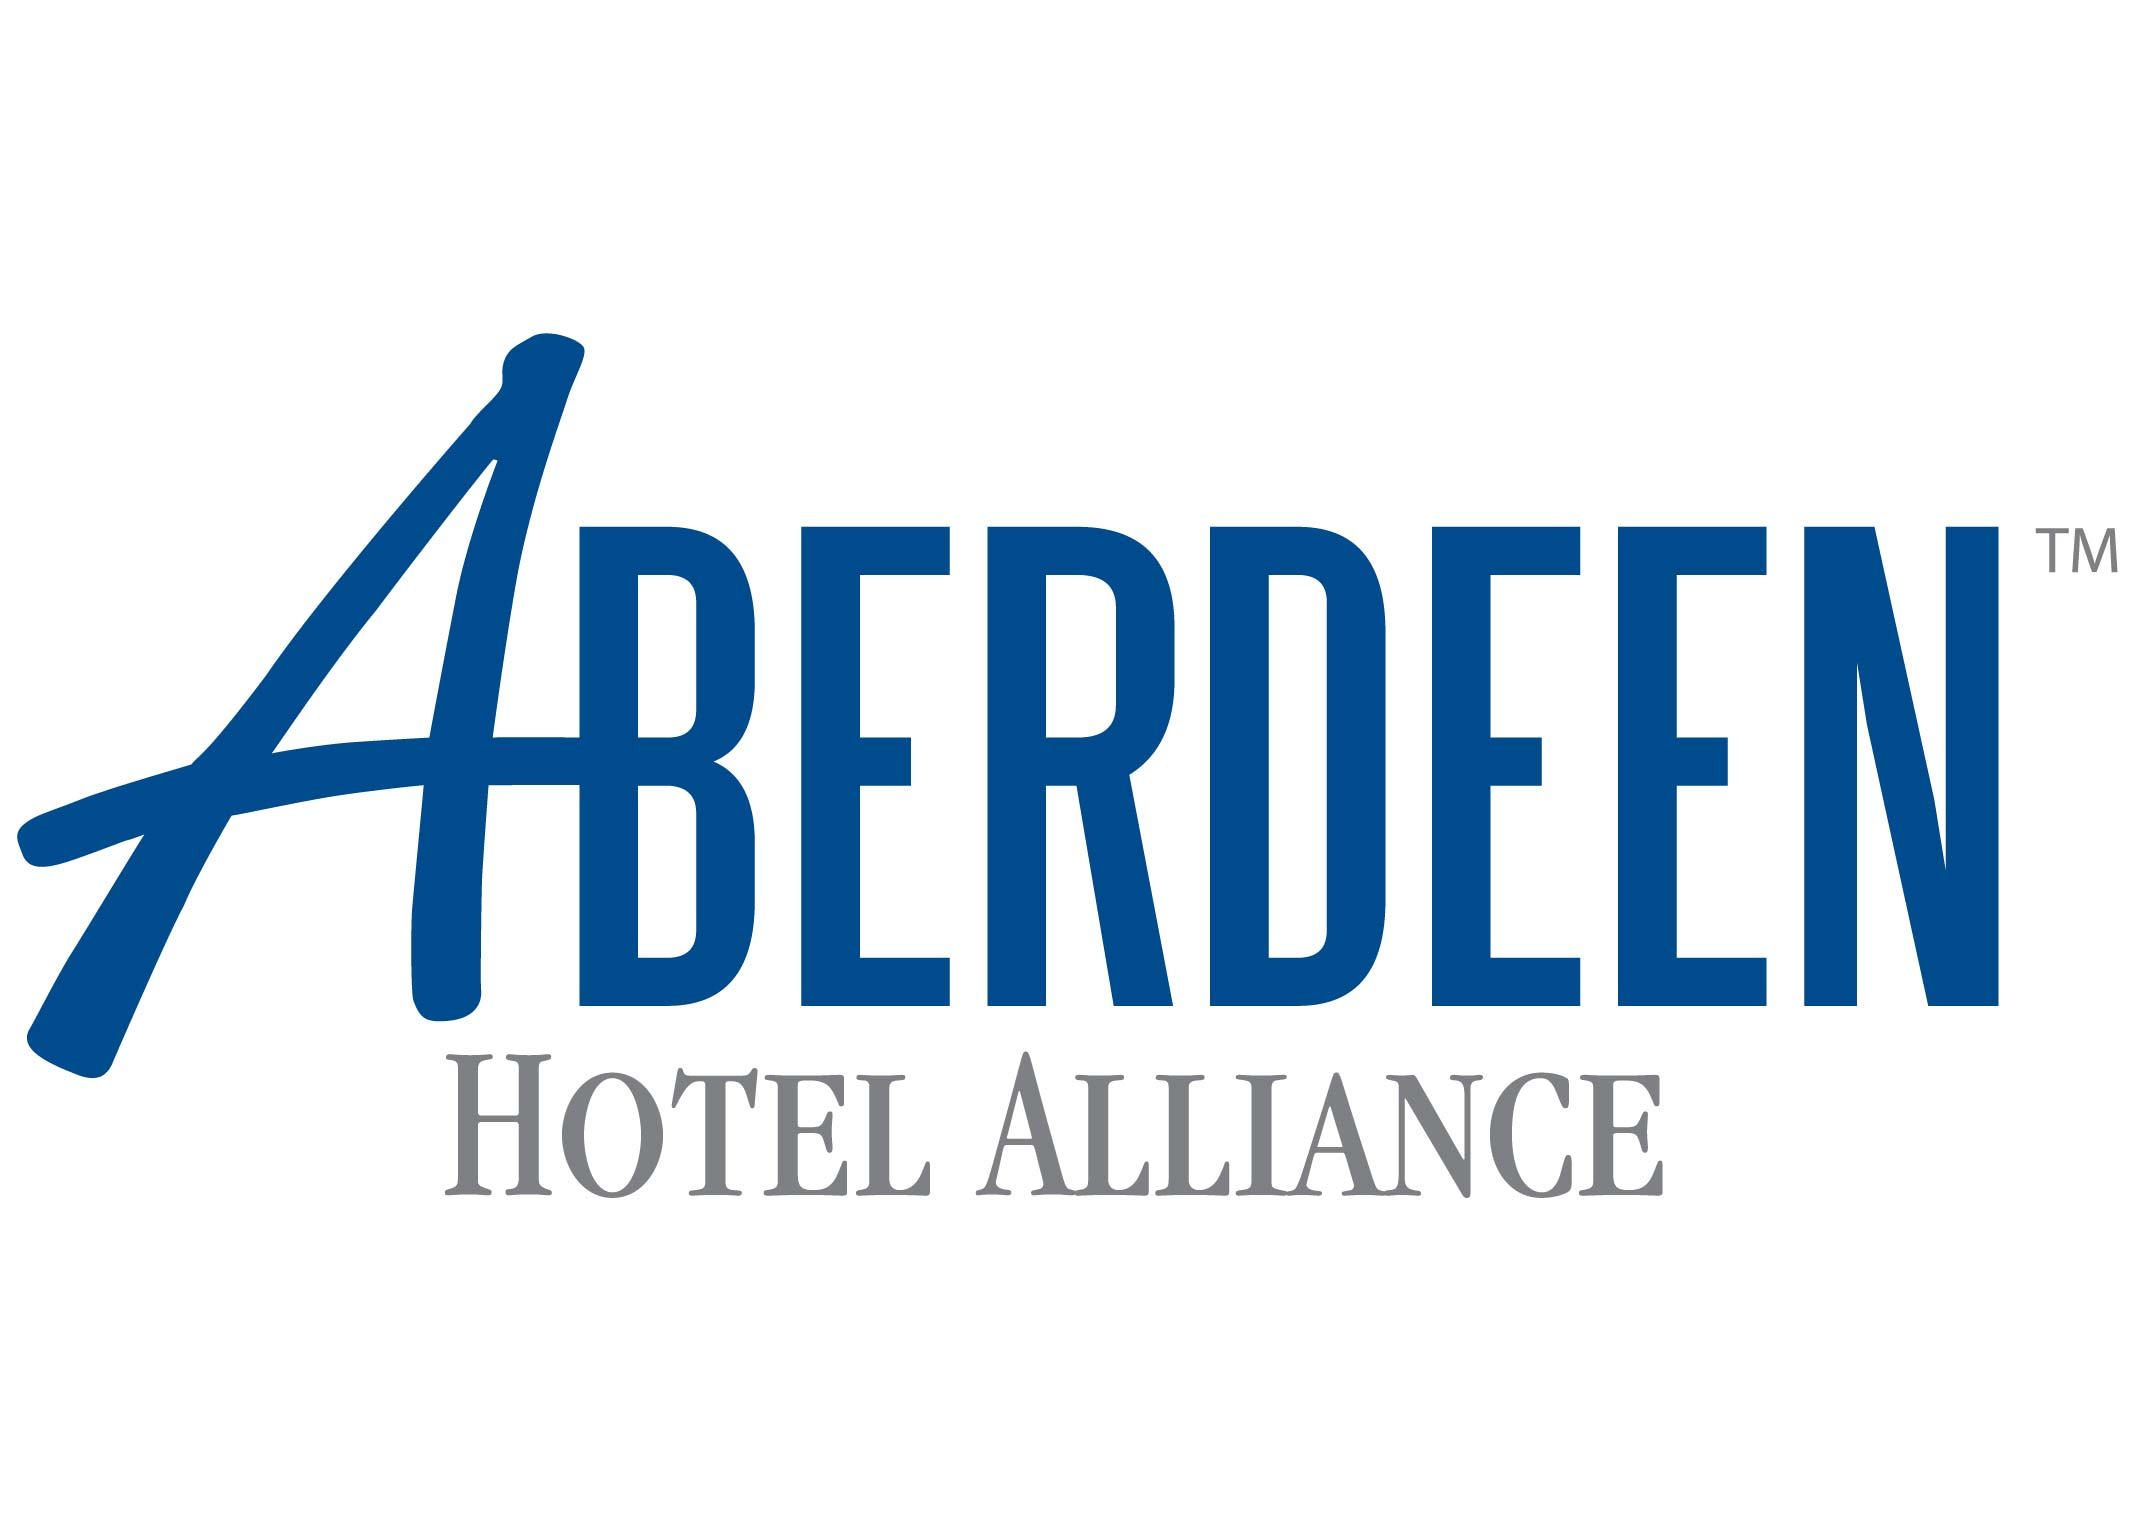 Aberdeen Hotel Alliance-01.jpg